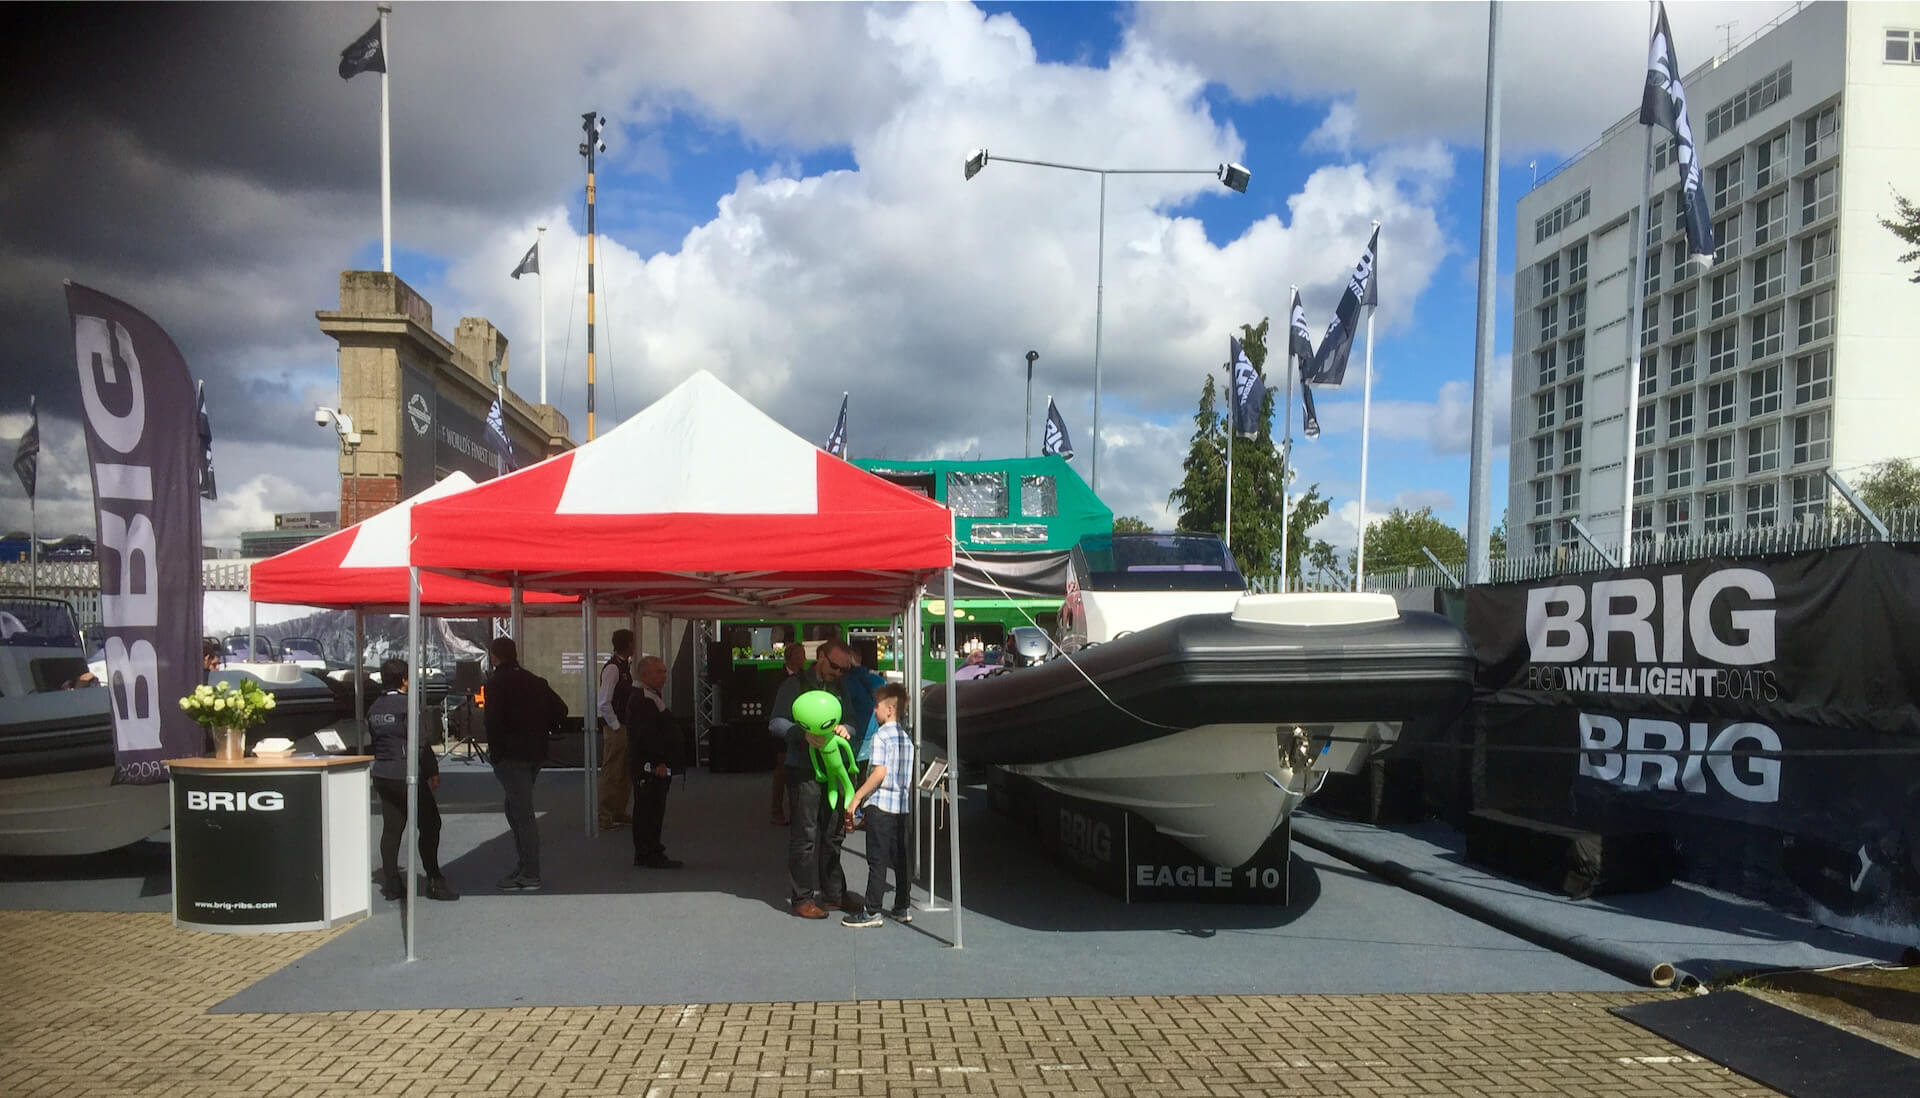 Exhibition stall hire